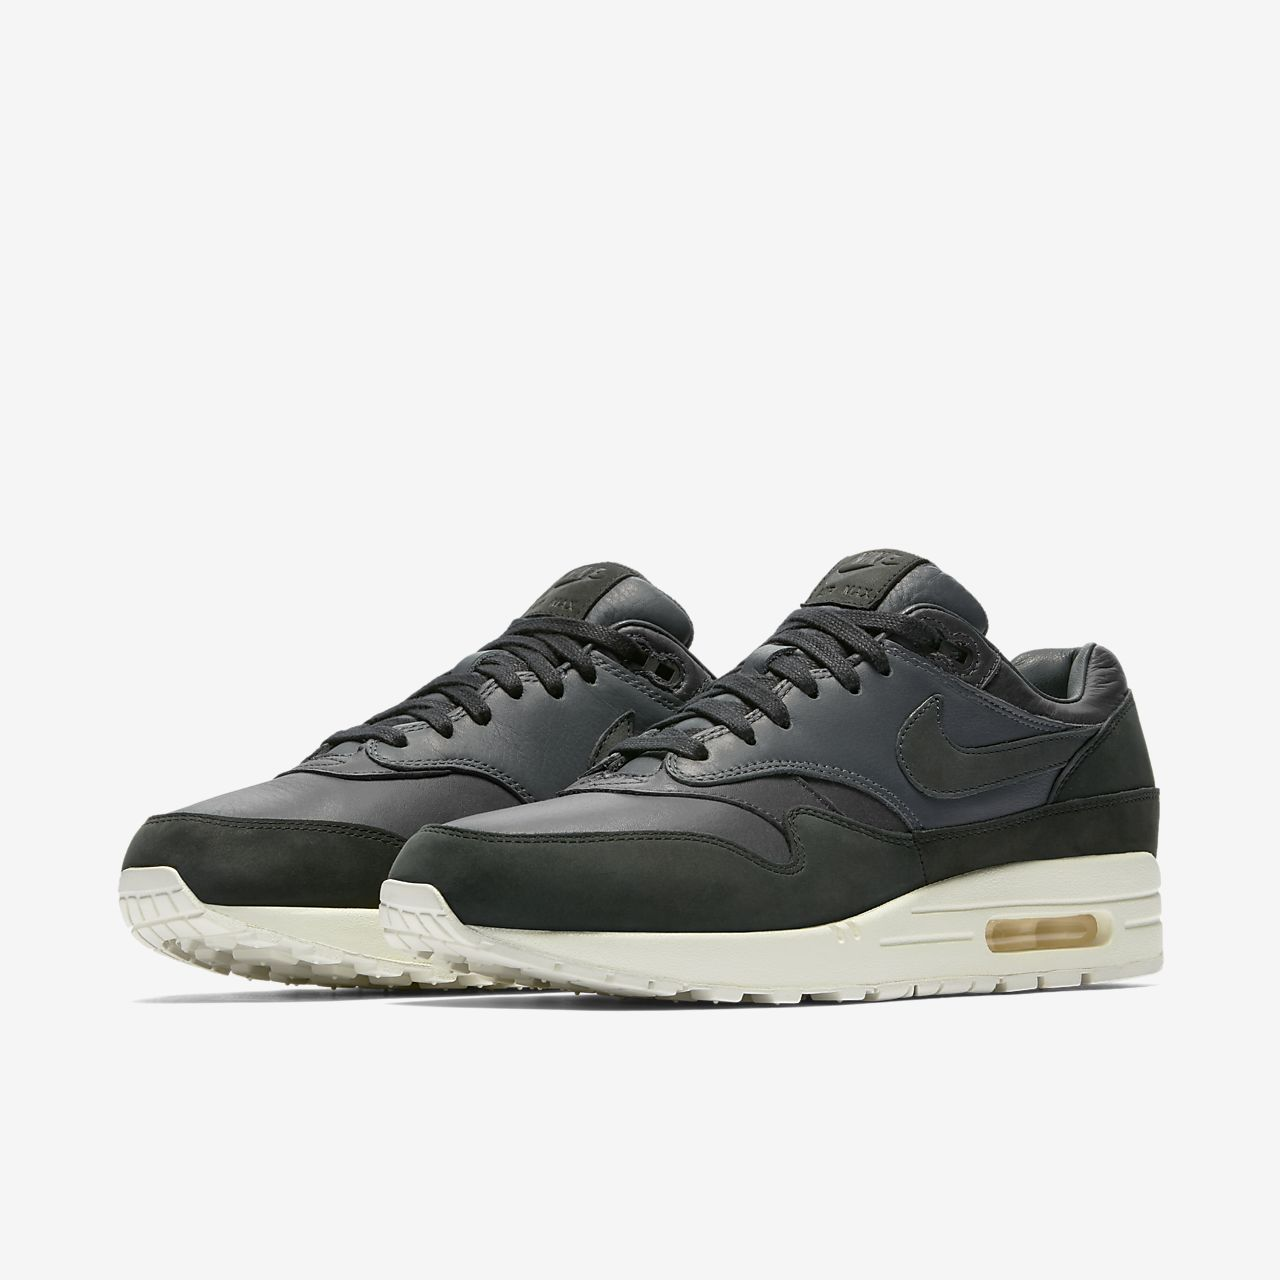 nike air max 1 pinnacle sail nz